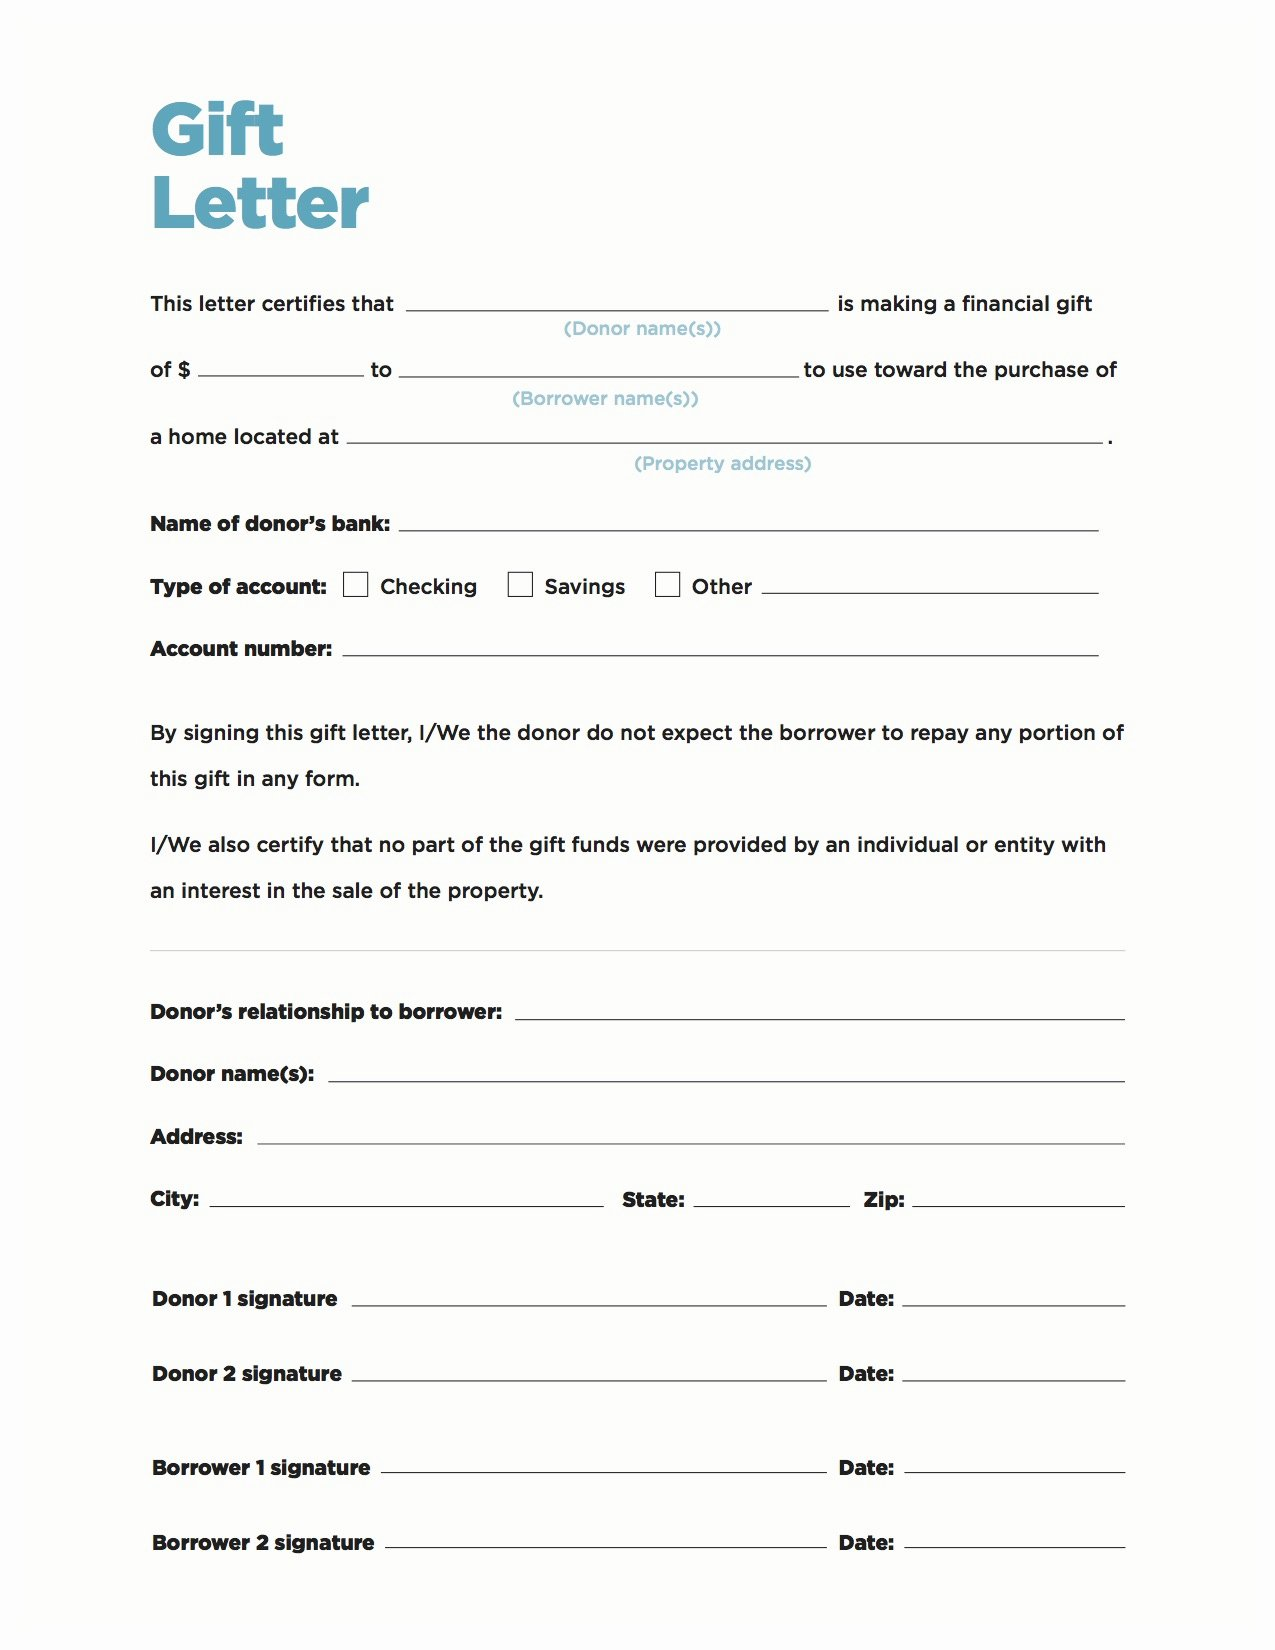 Fha Gift Letter Template Elegant Gift Money Can Meet Your Down Payment Needs Nerdwallet